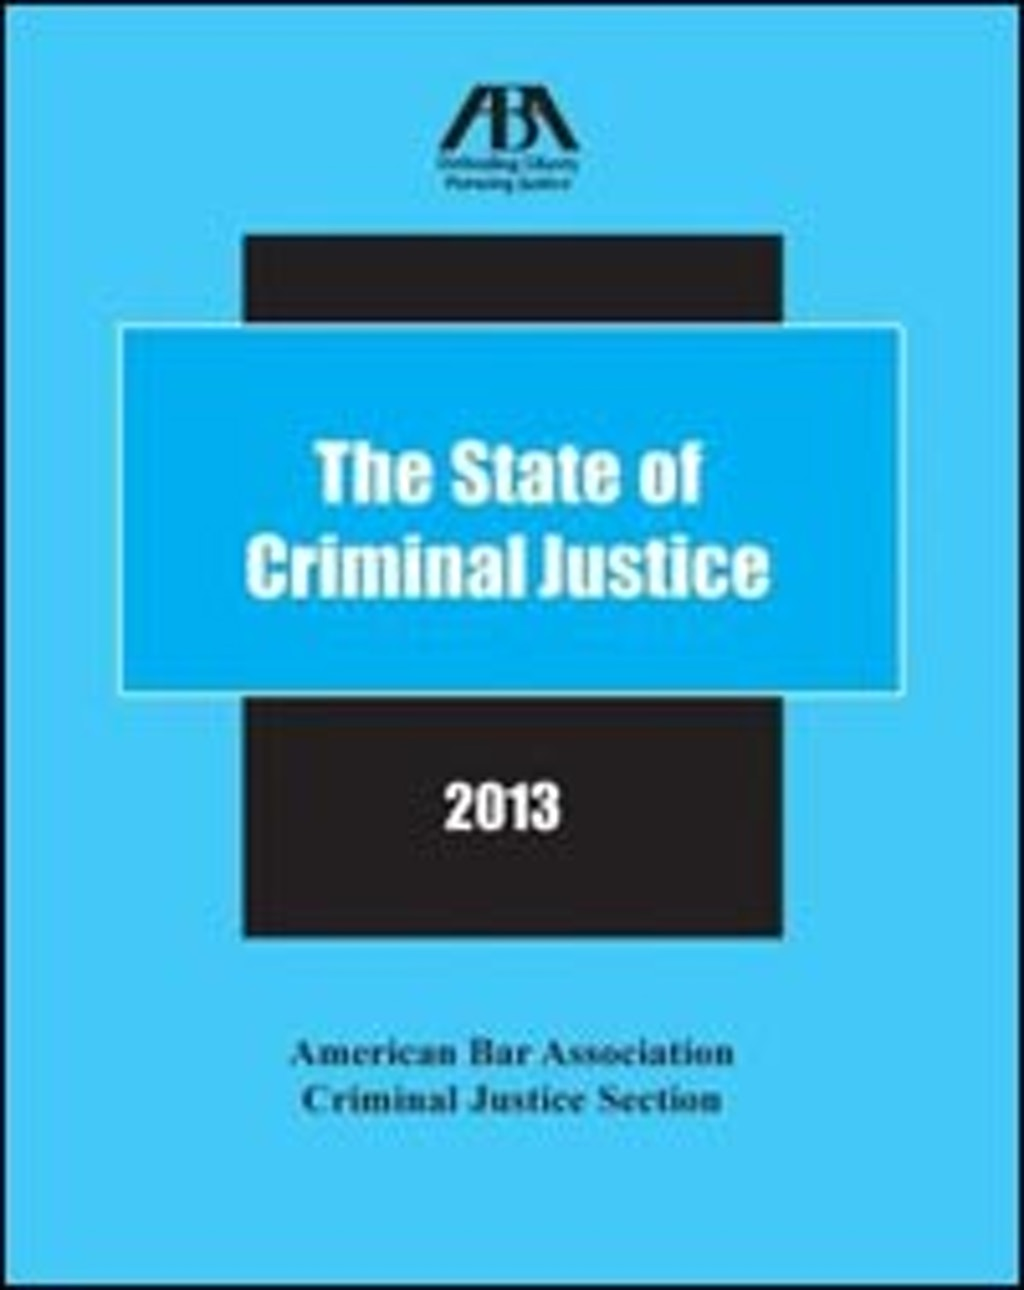 RESOURCES: New ABA Report on Criminal Justice and the Death Penalty